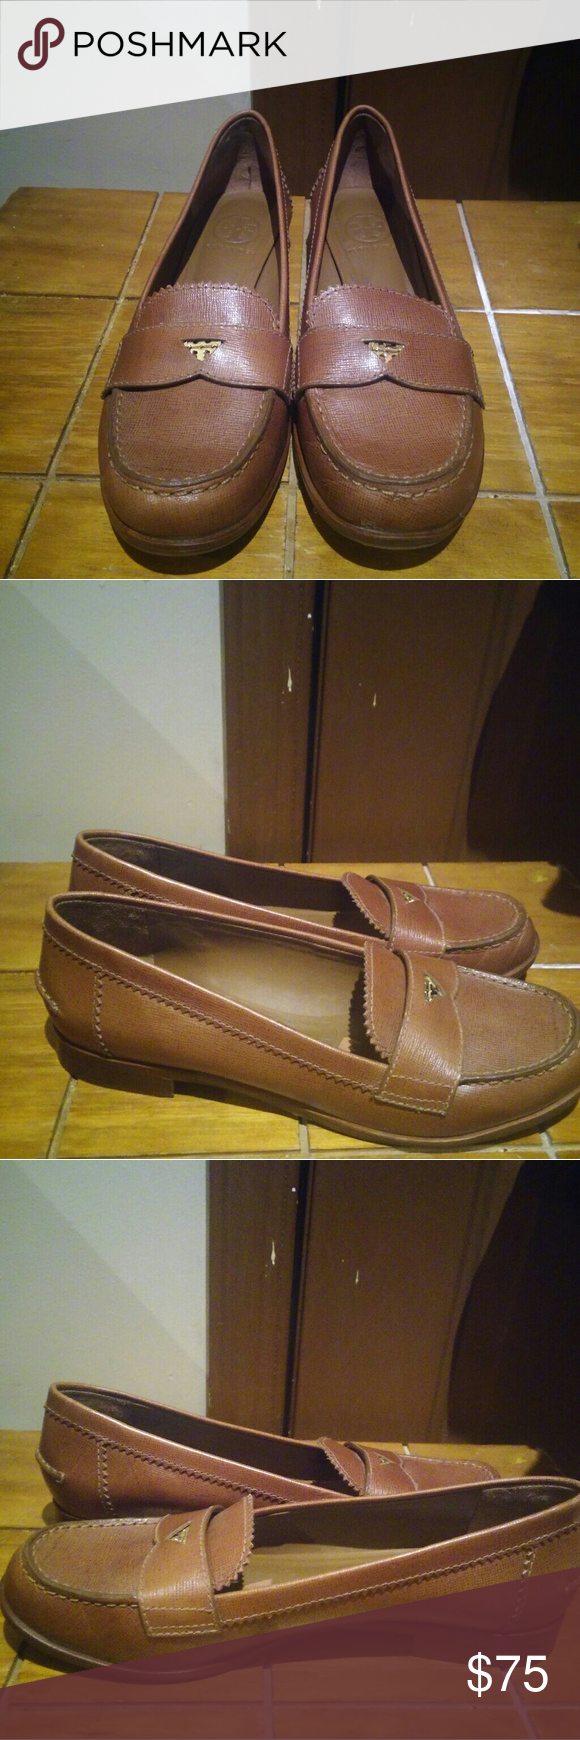 953d50cd682 Tory Burch Penny Loafers 8 1 2 M Great condition. No box Tory Burch Shoes  Flats   Loafers